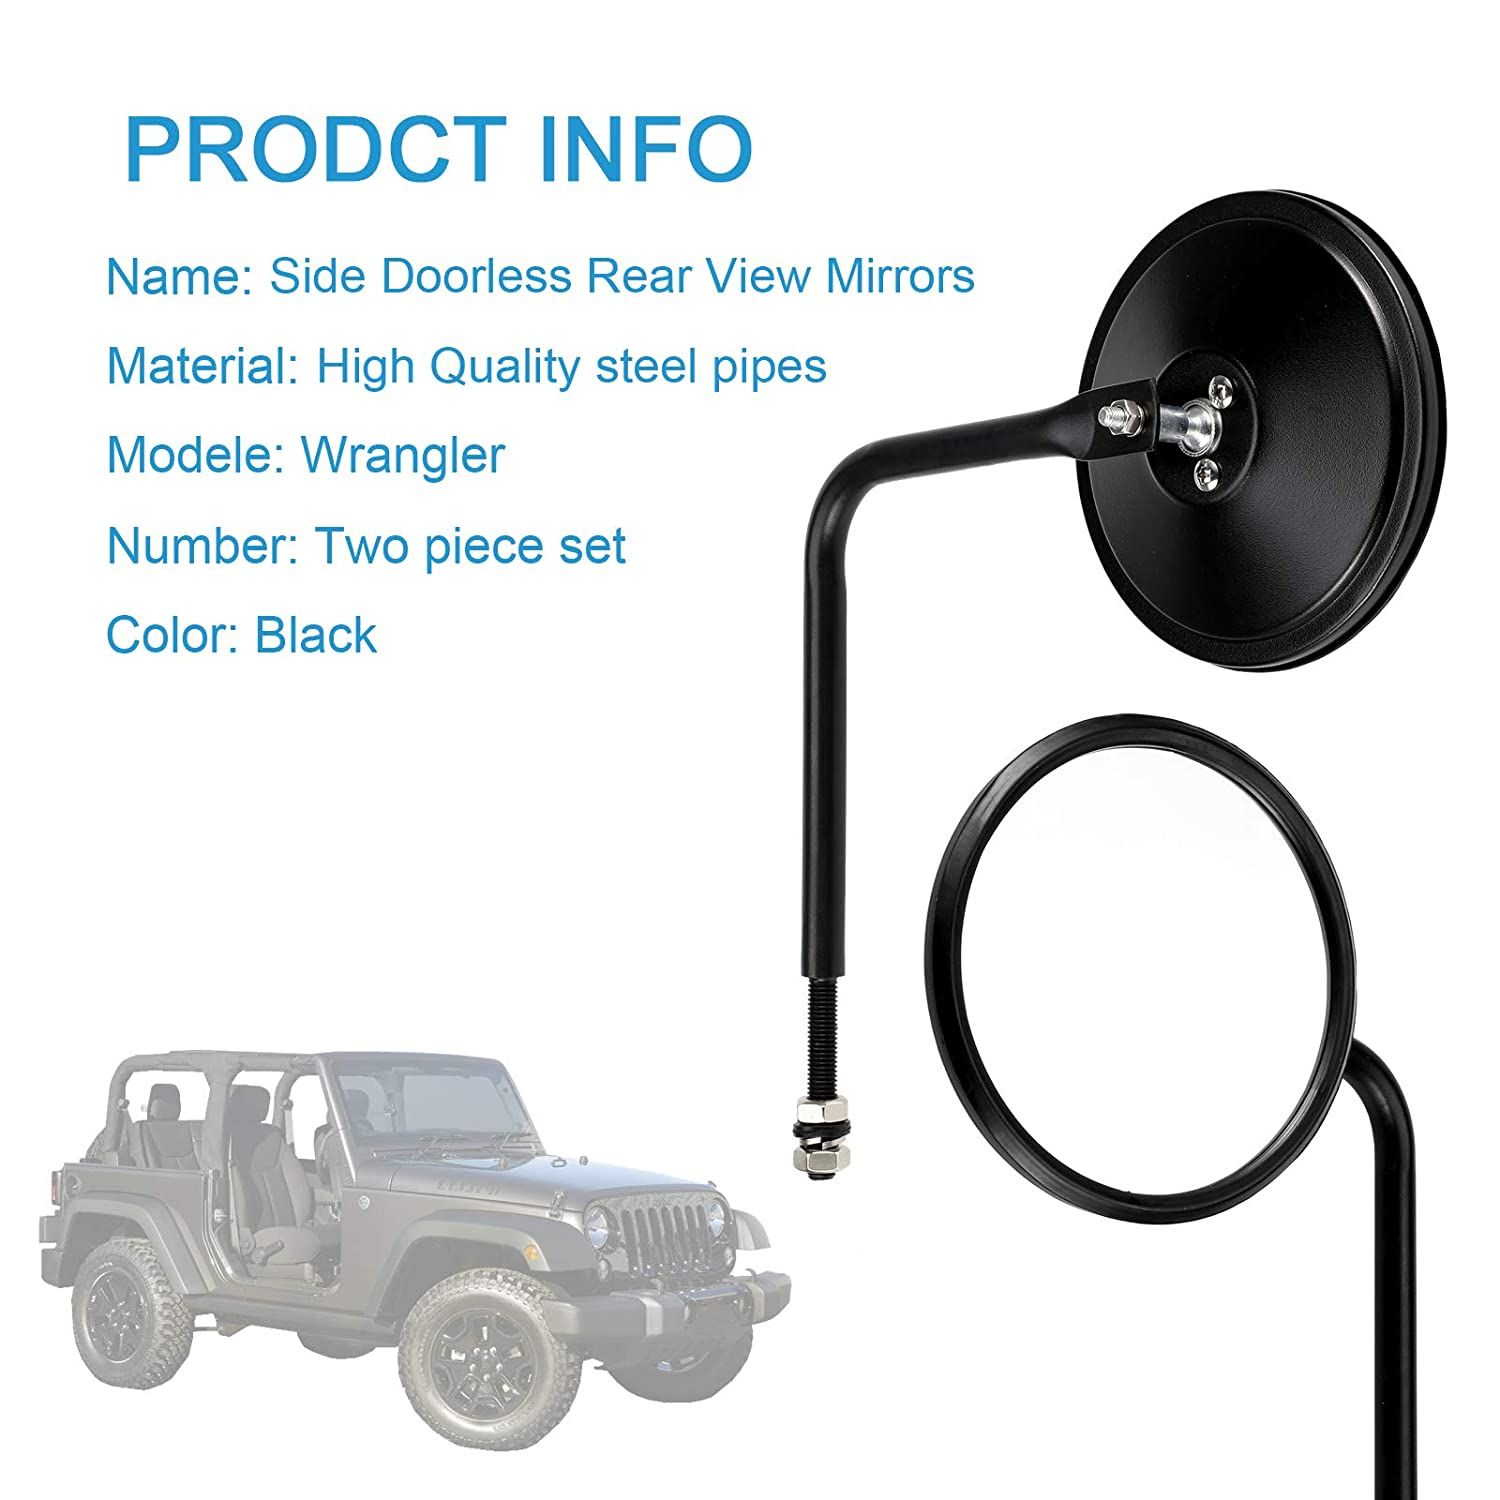 Right//Left Side View Quick Release Mirror 2 Pack Rear View Mirror Retroviseur Rond Vintage,Rearview Mirrors for J-eep Wrangler JK TJ CJ YJ JL JKU 1945-2018 Rubicon Unlimited Sport Sahara